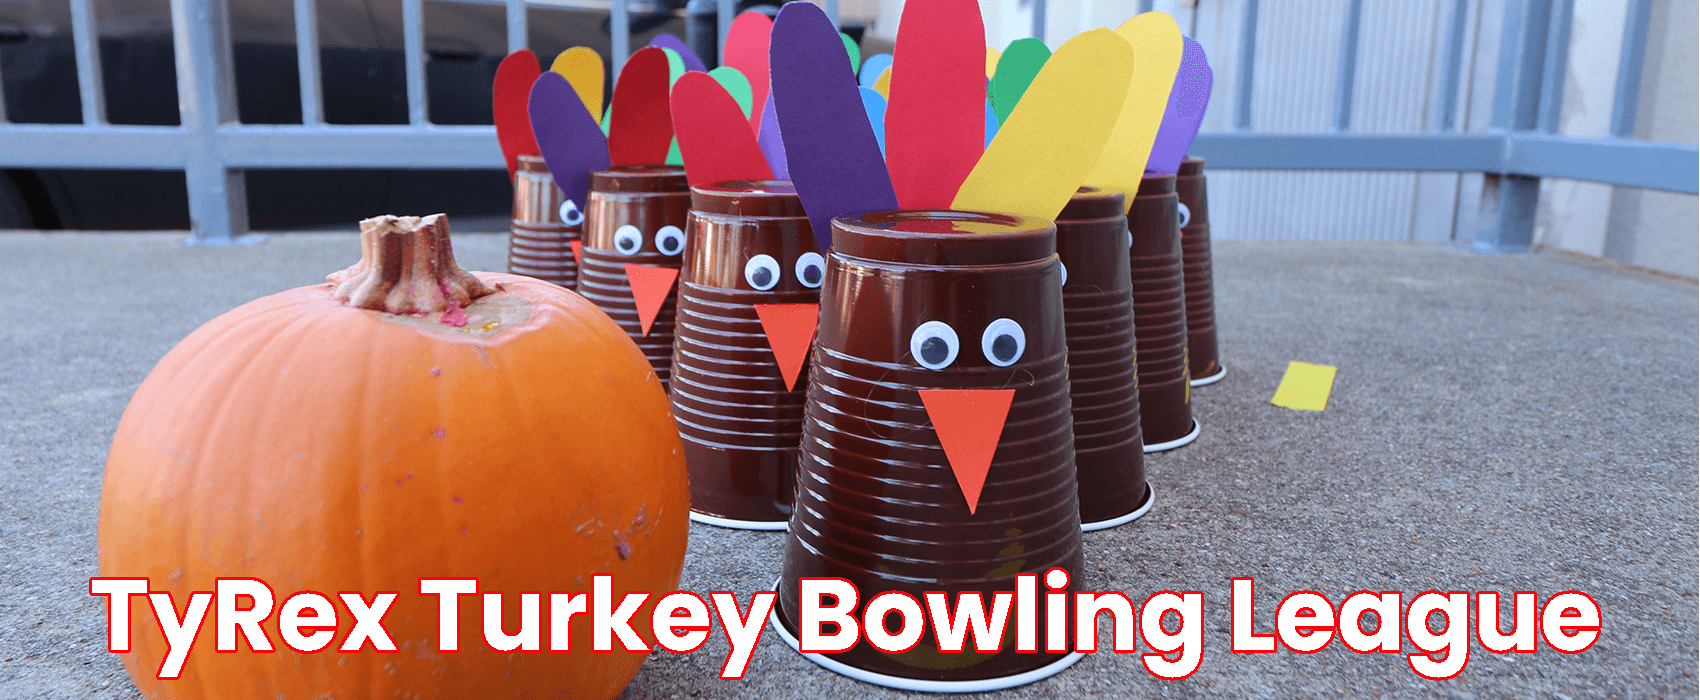 TyRex Turkey Bowling League